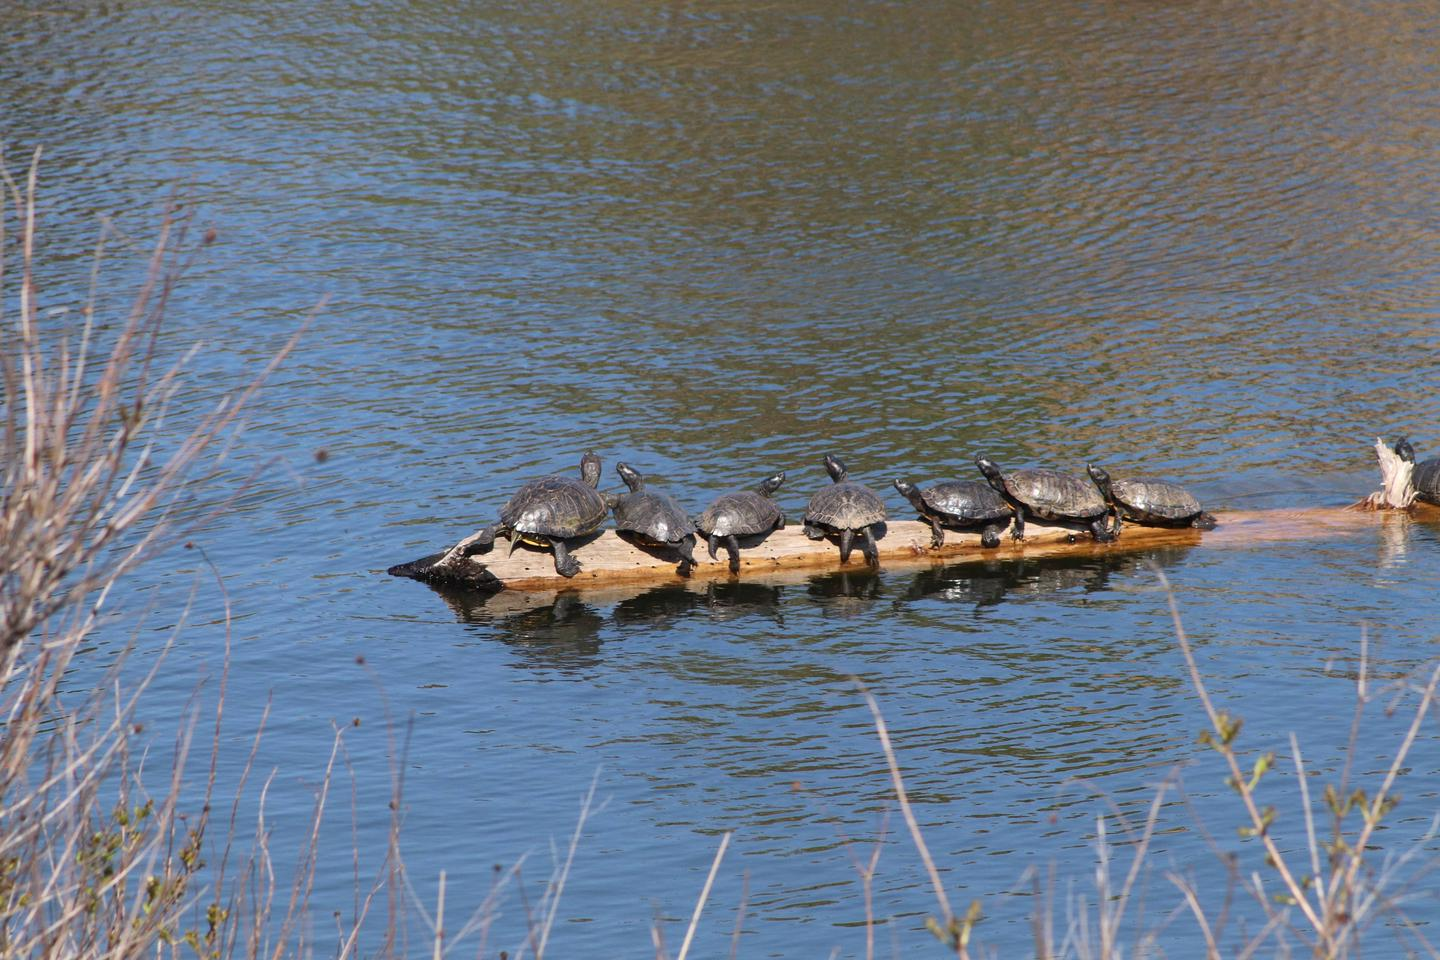 Red-eared Slider turtles sunning on a log in French Lake.Wichita Mountains is home to a variety of creatures including the colorful red-eared slider (Trachemys scripta elegans).